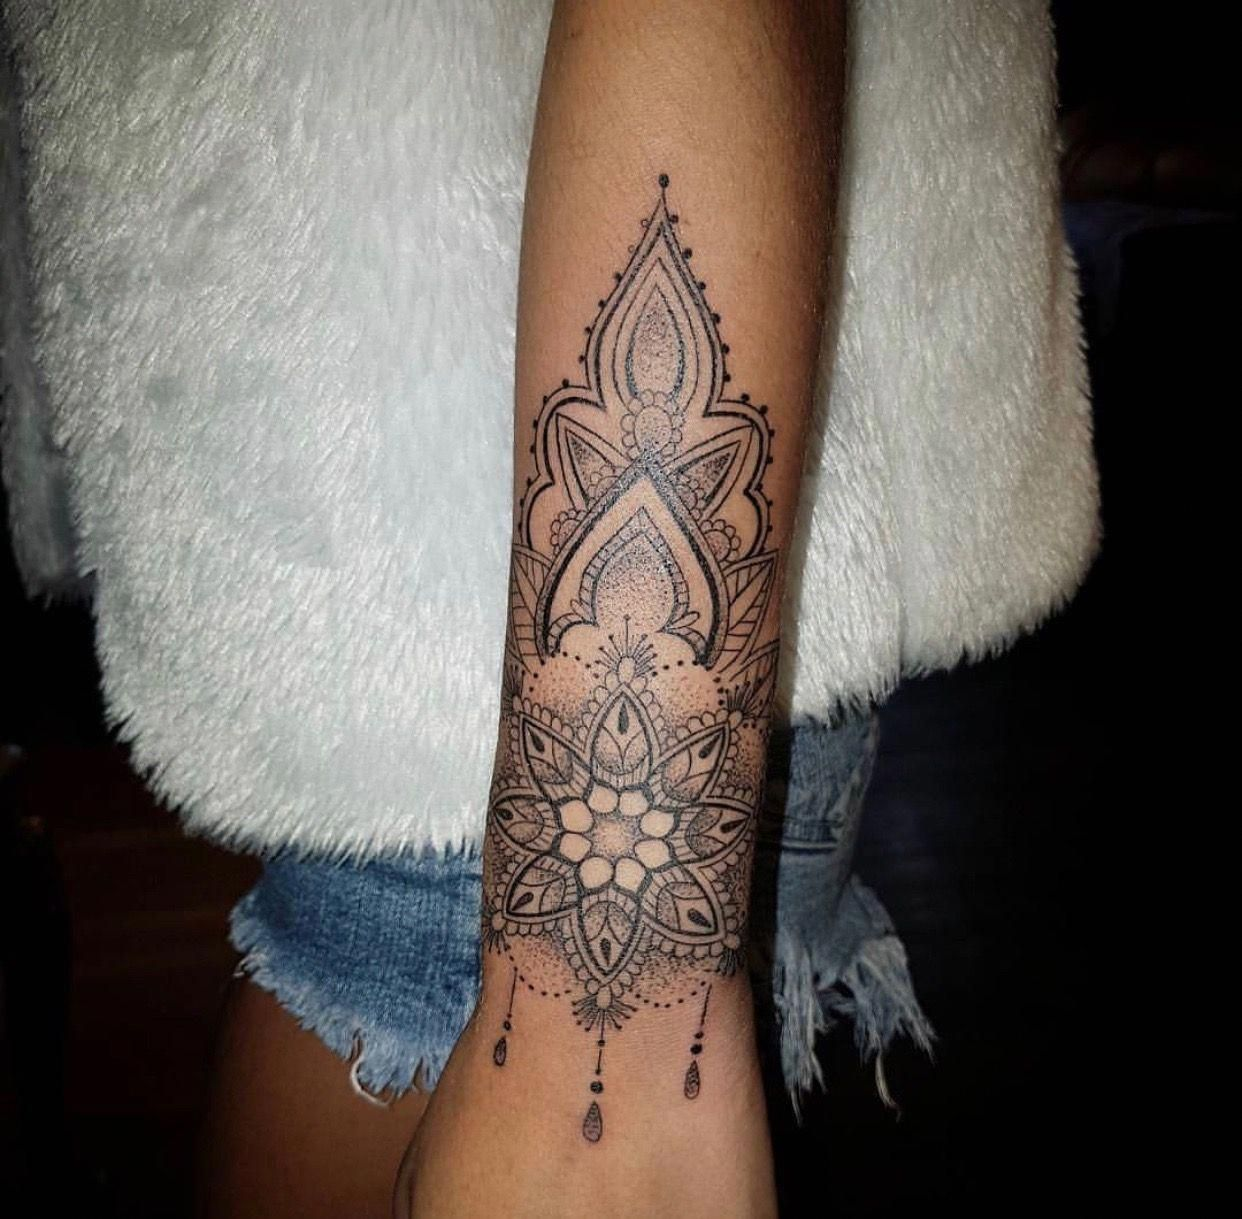 Wrist Tattoo Design Wristtattoodesign Mandala Hand Tattoos Forearm Tattoo Women Forearm Mandala Tattoo